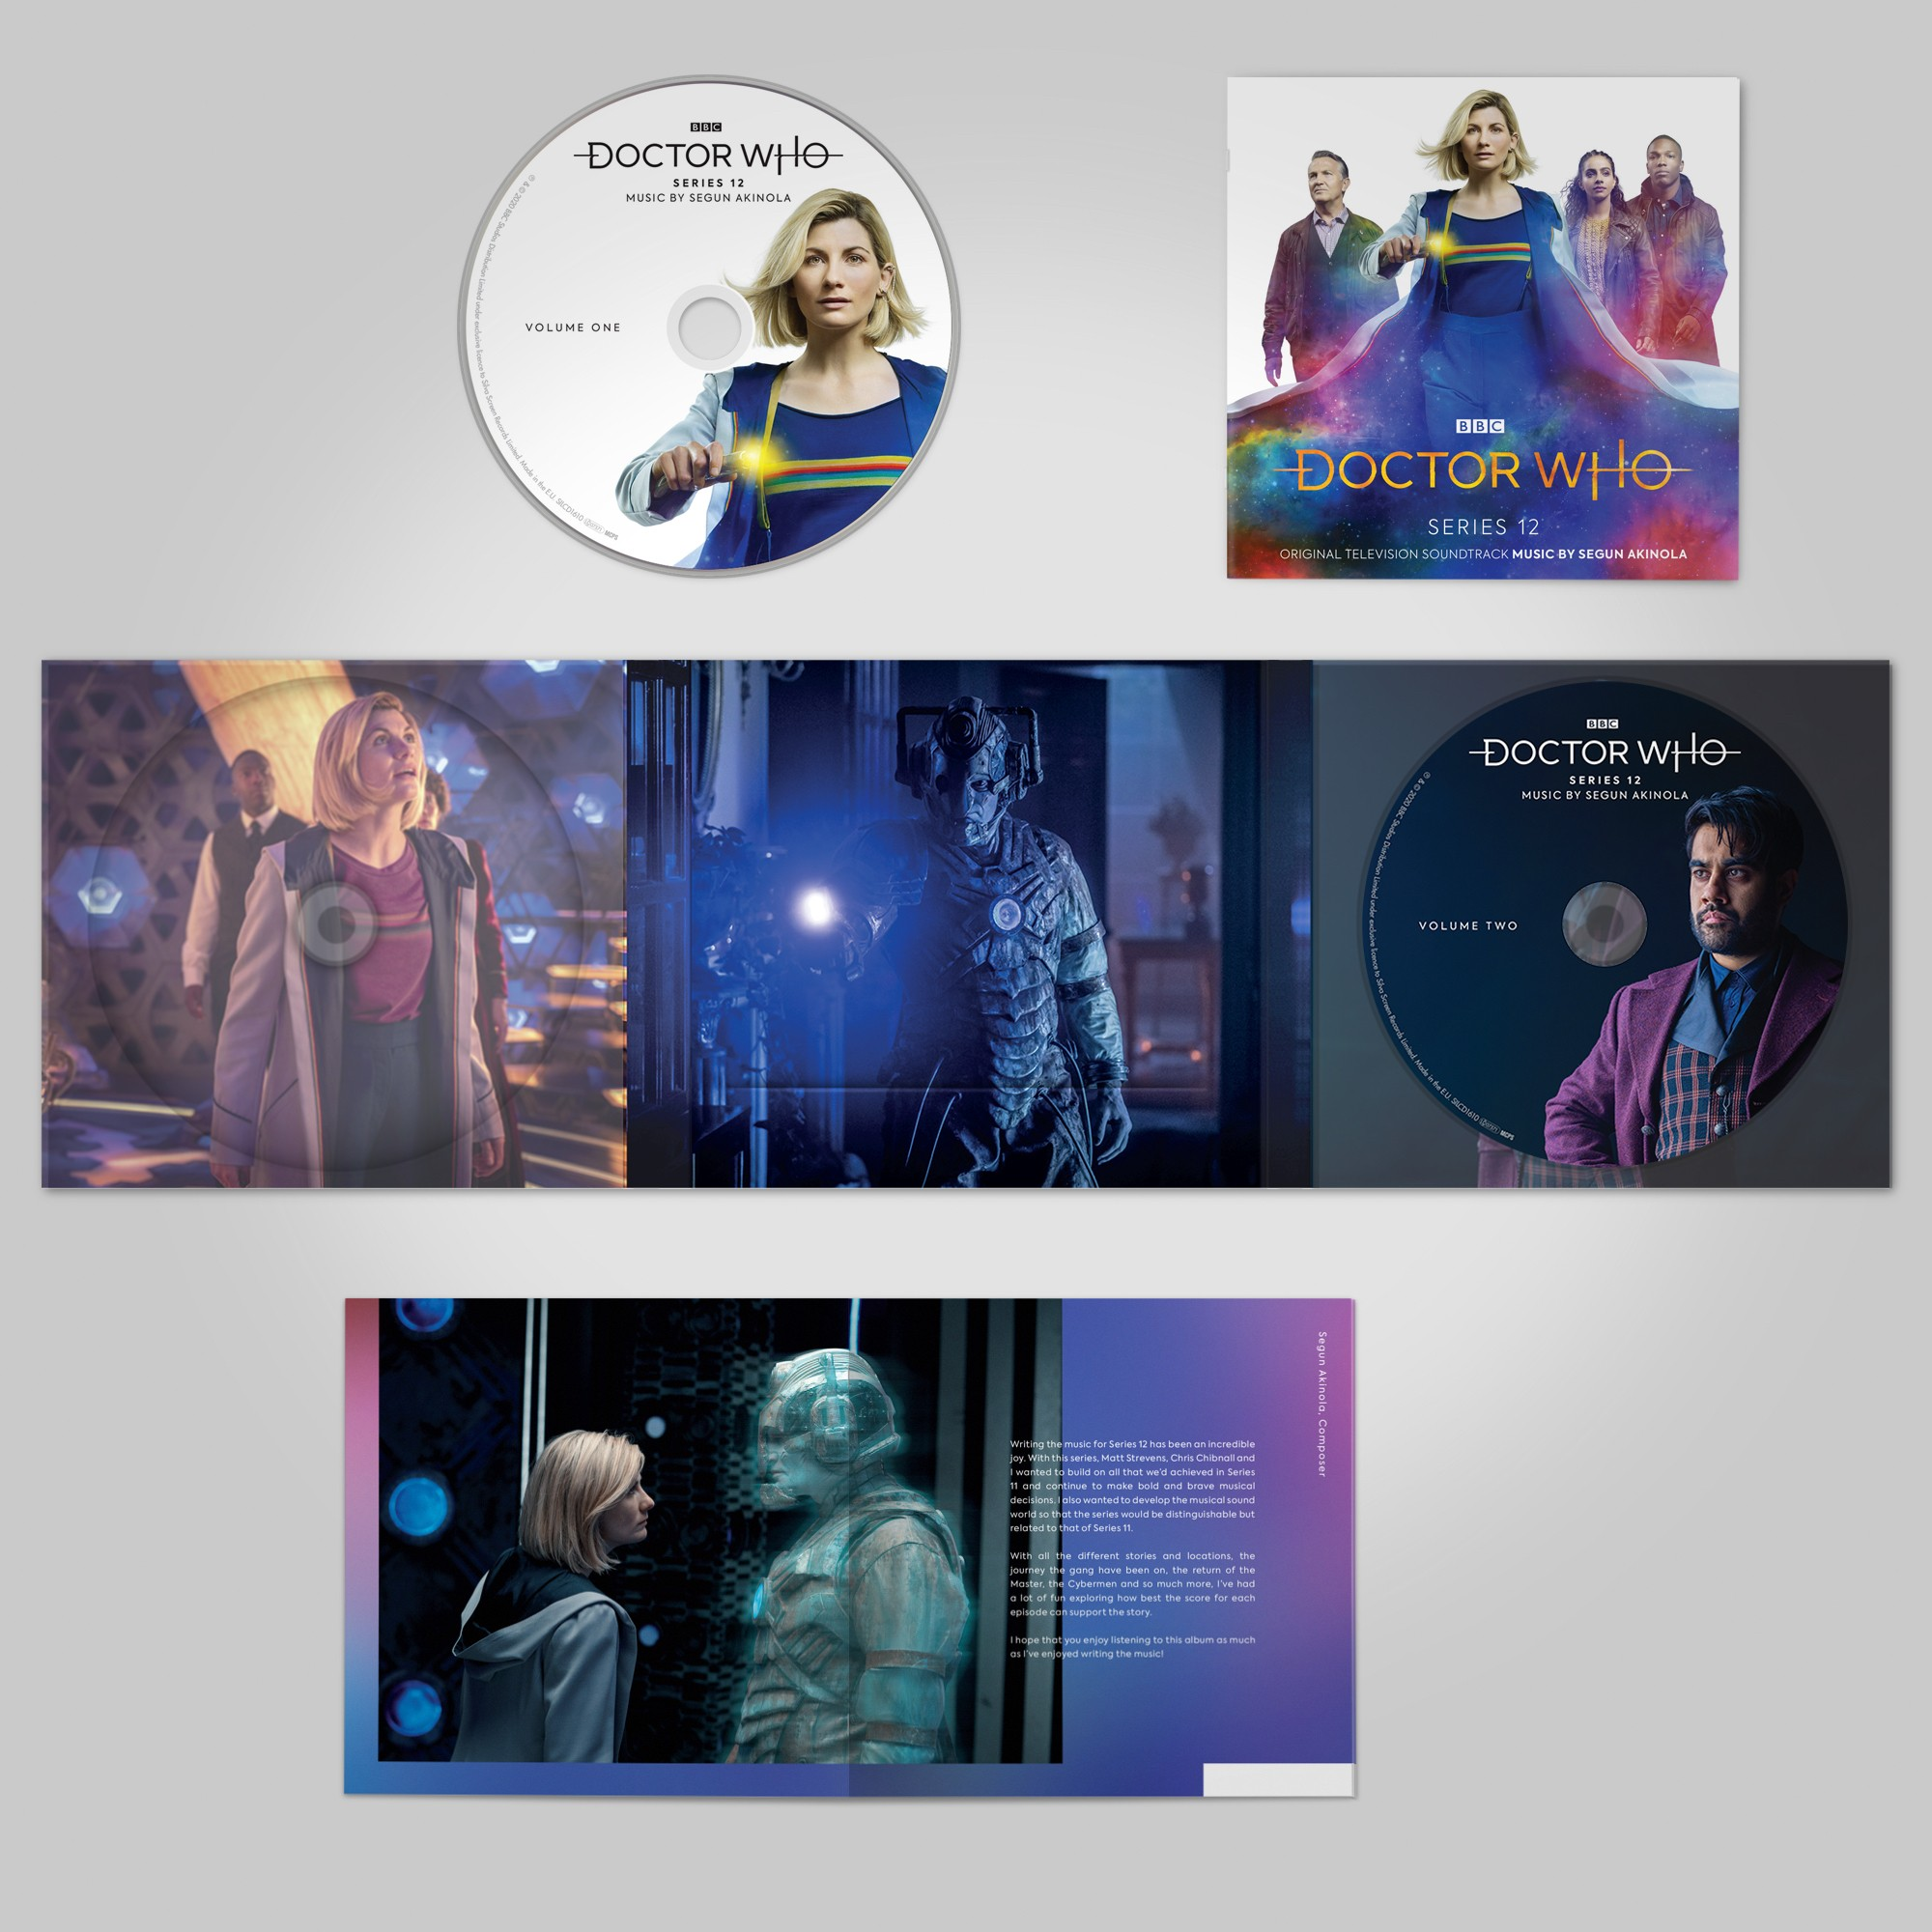 Doctor Who Series 12 soundtrack